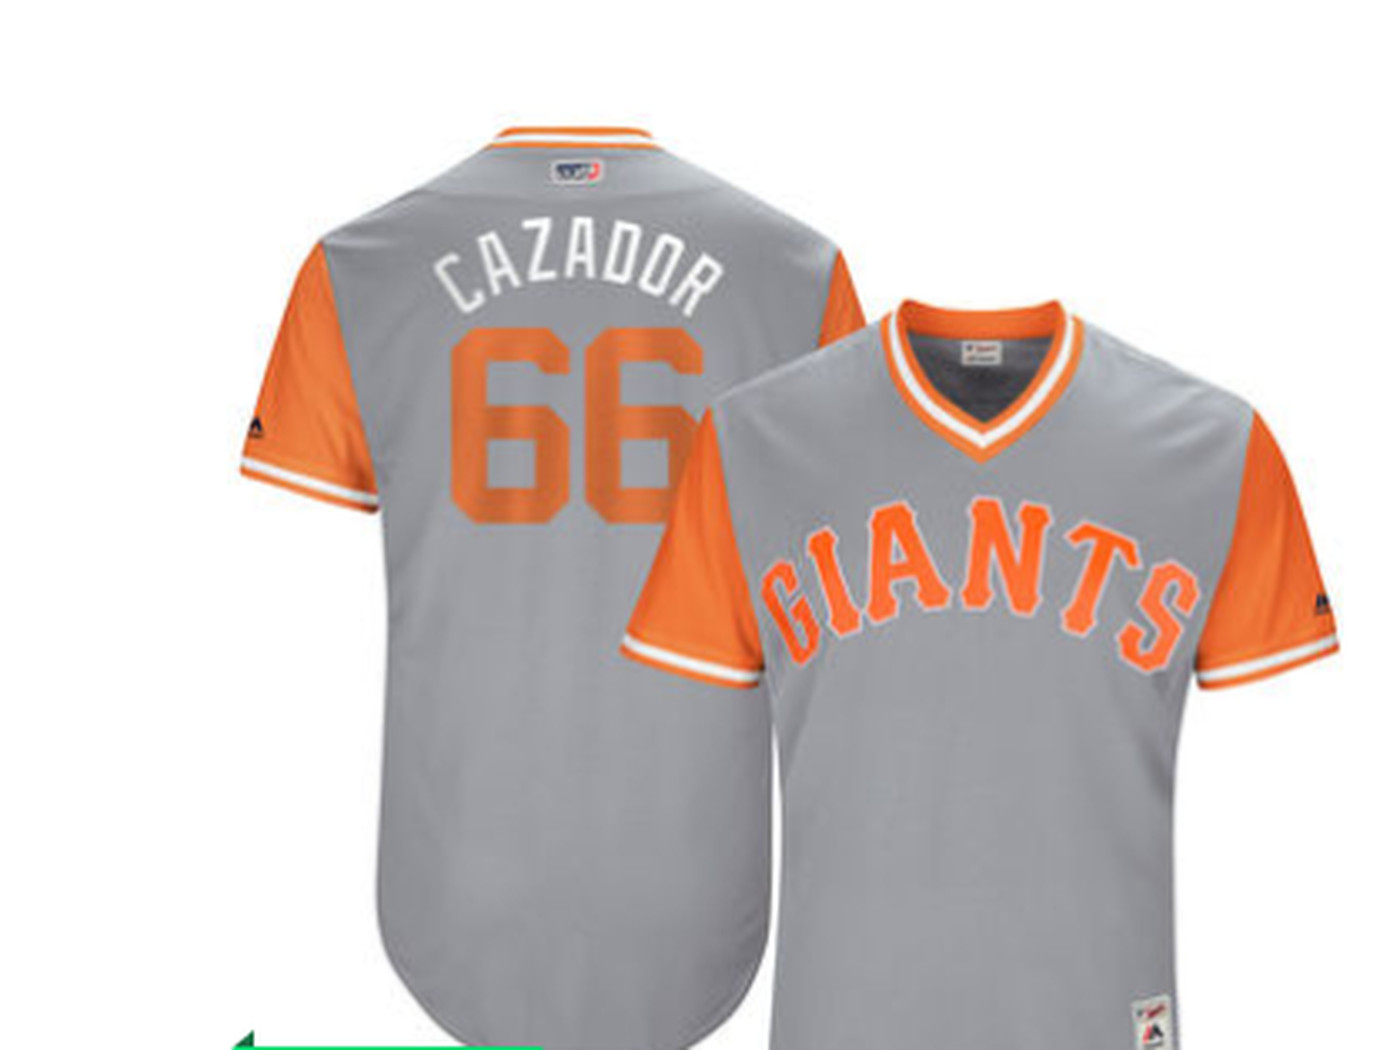 4c7f6904 The Giants will have nicknames on their jerseys, so we should rank them